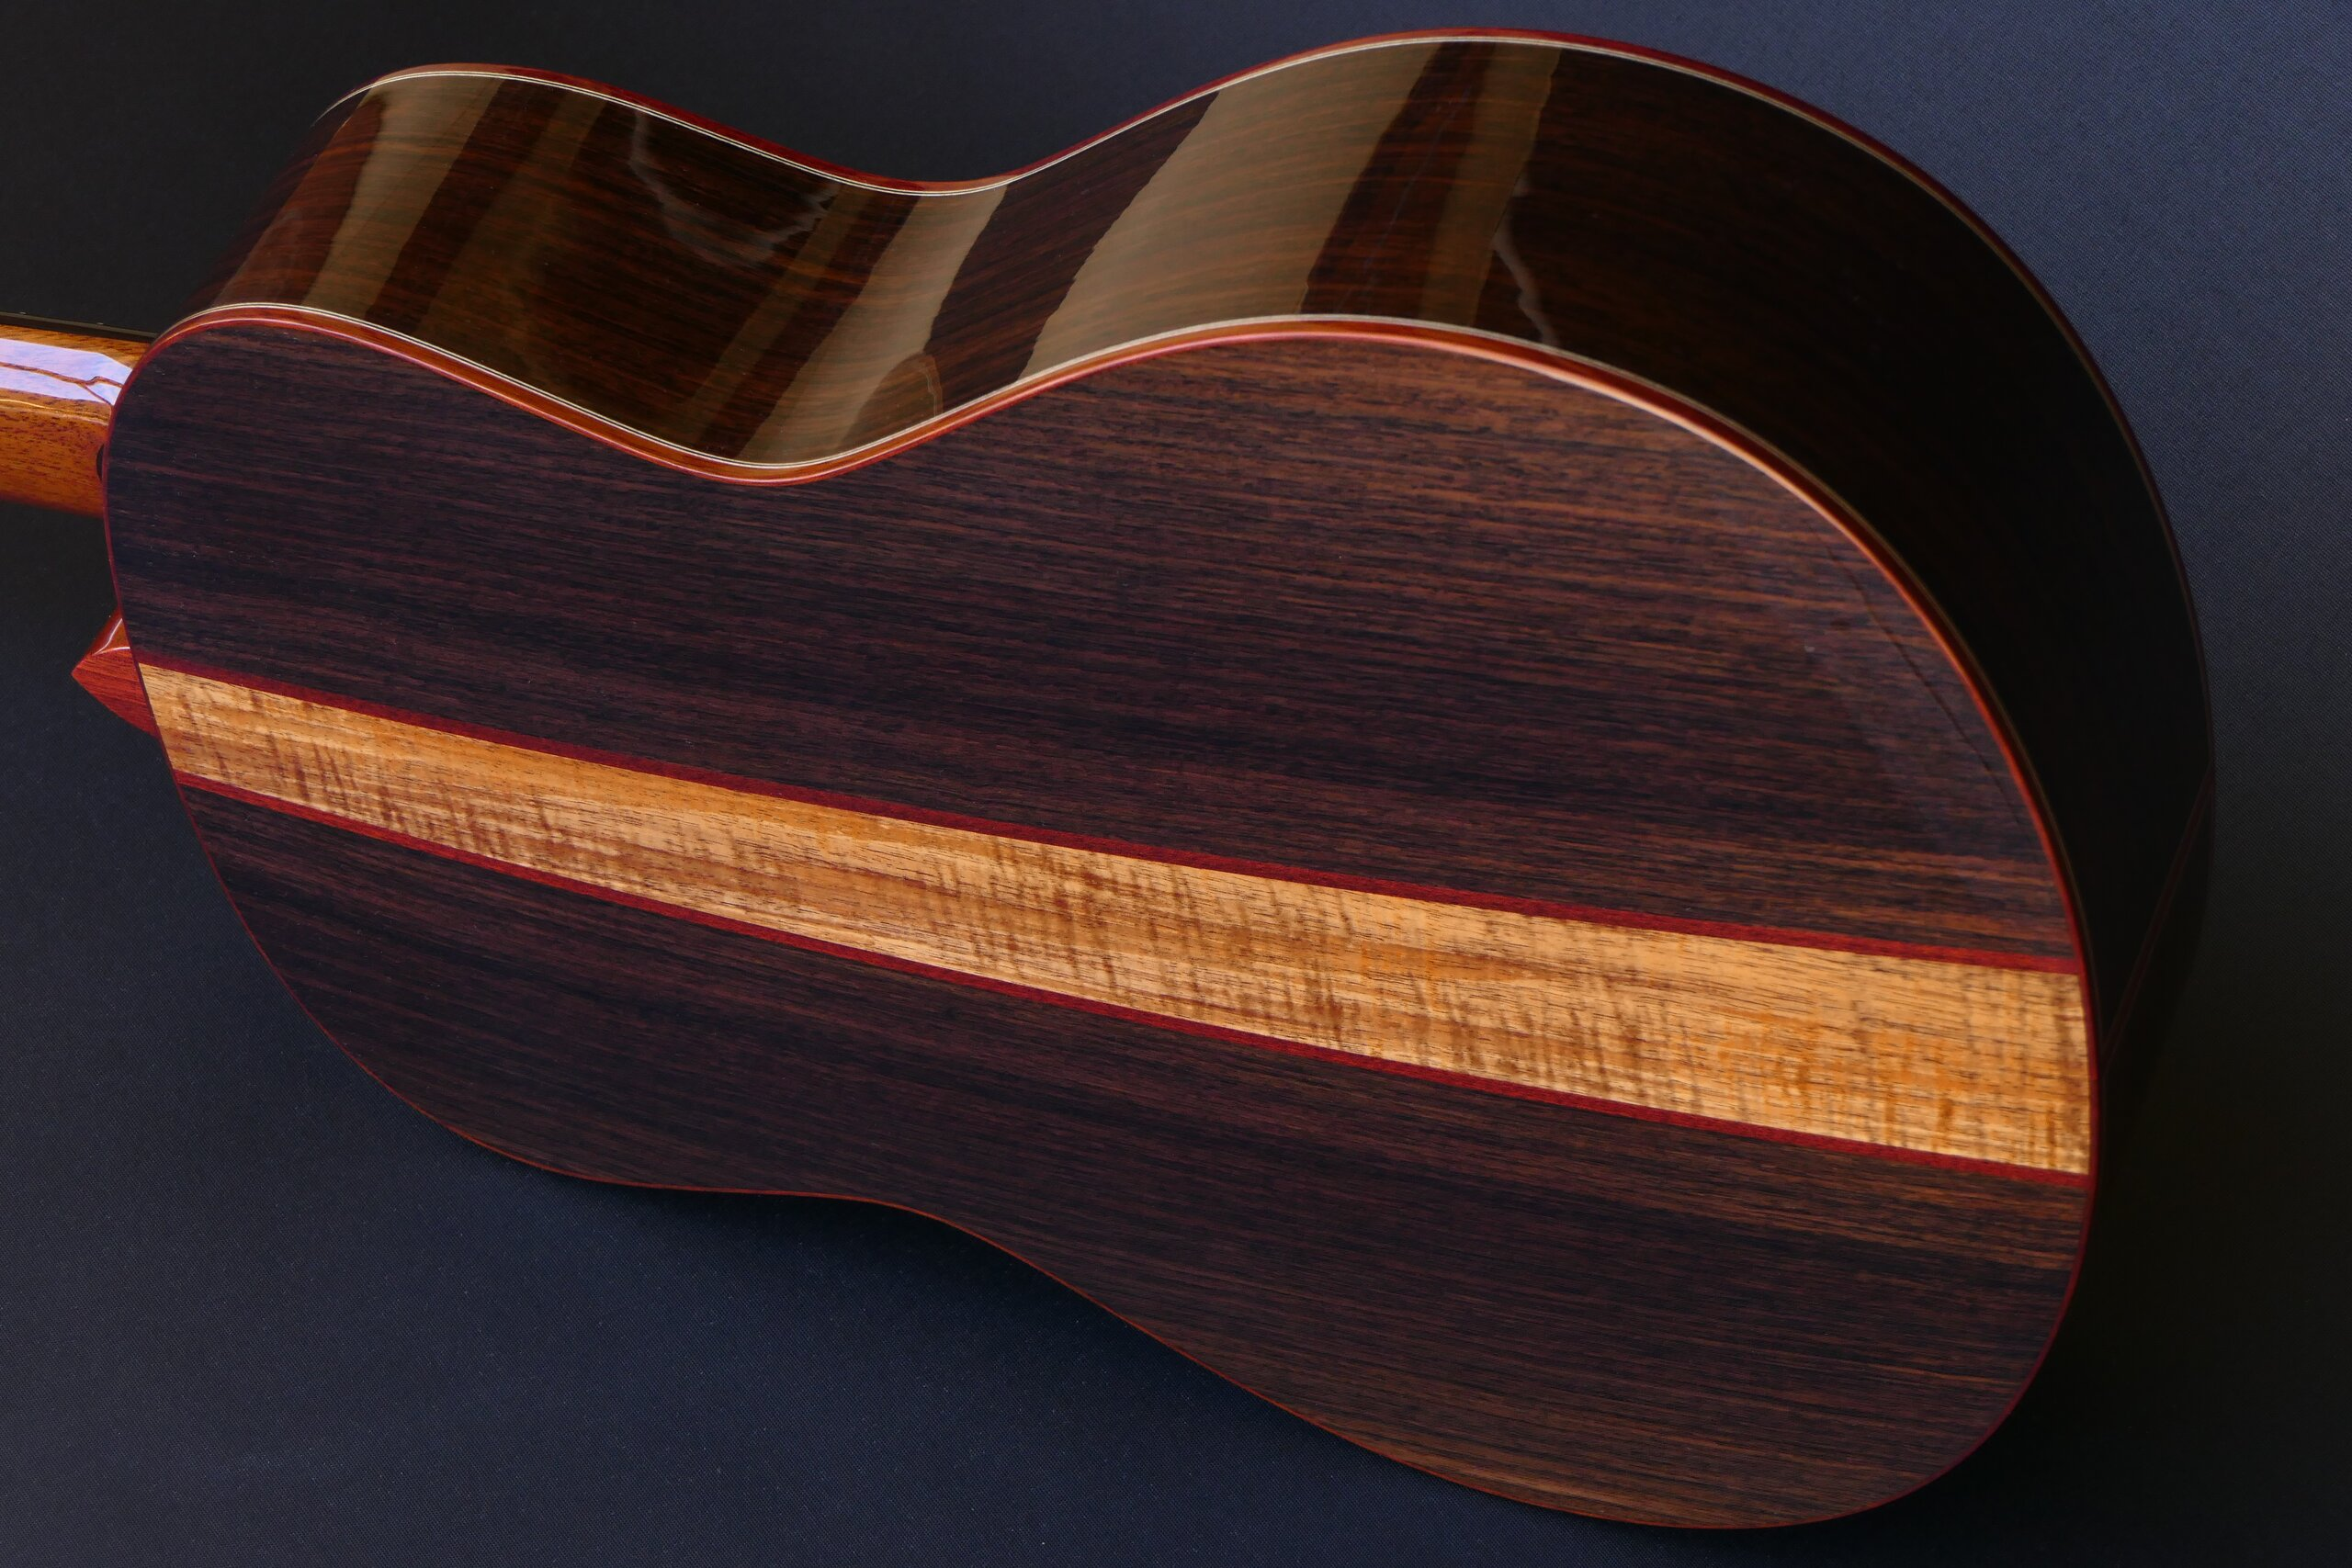 Gore classical guitar with three piece back in roeswood with blackwood centre strip